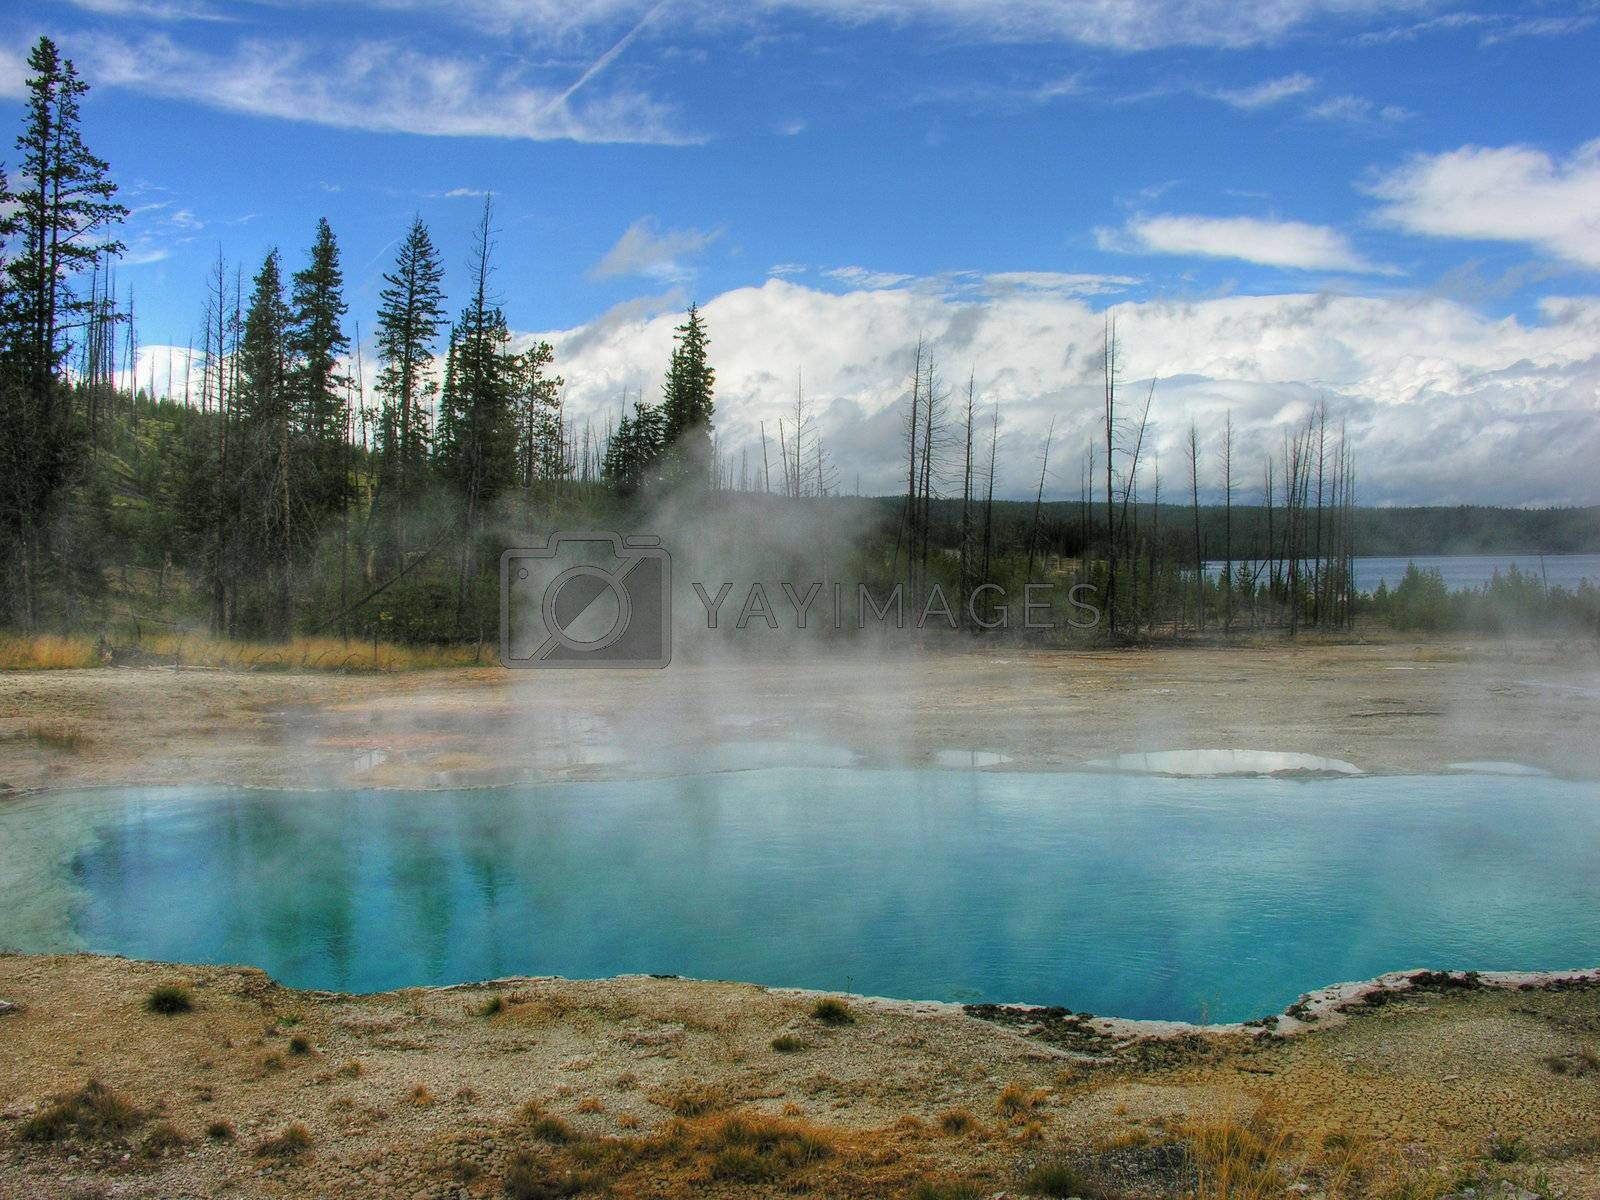 Yellowstone, Wyoming by jovannig